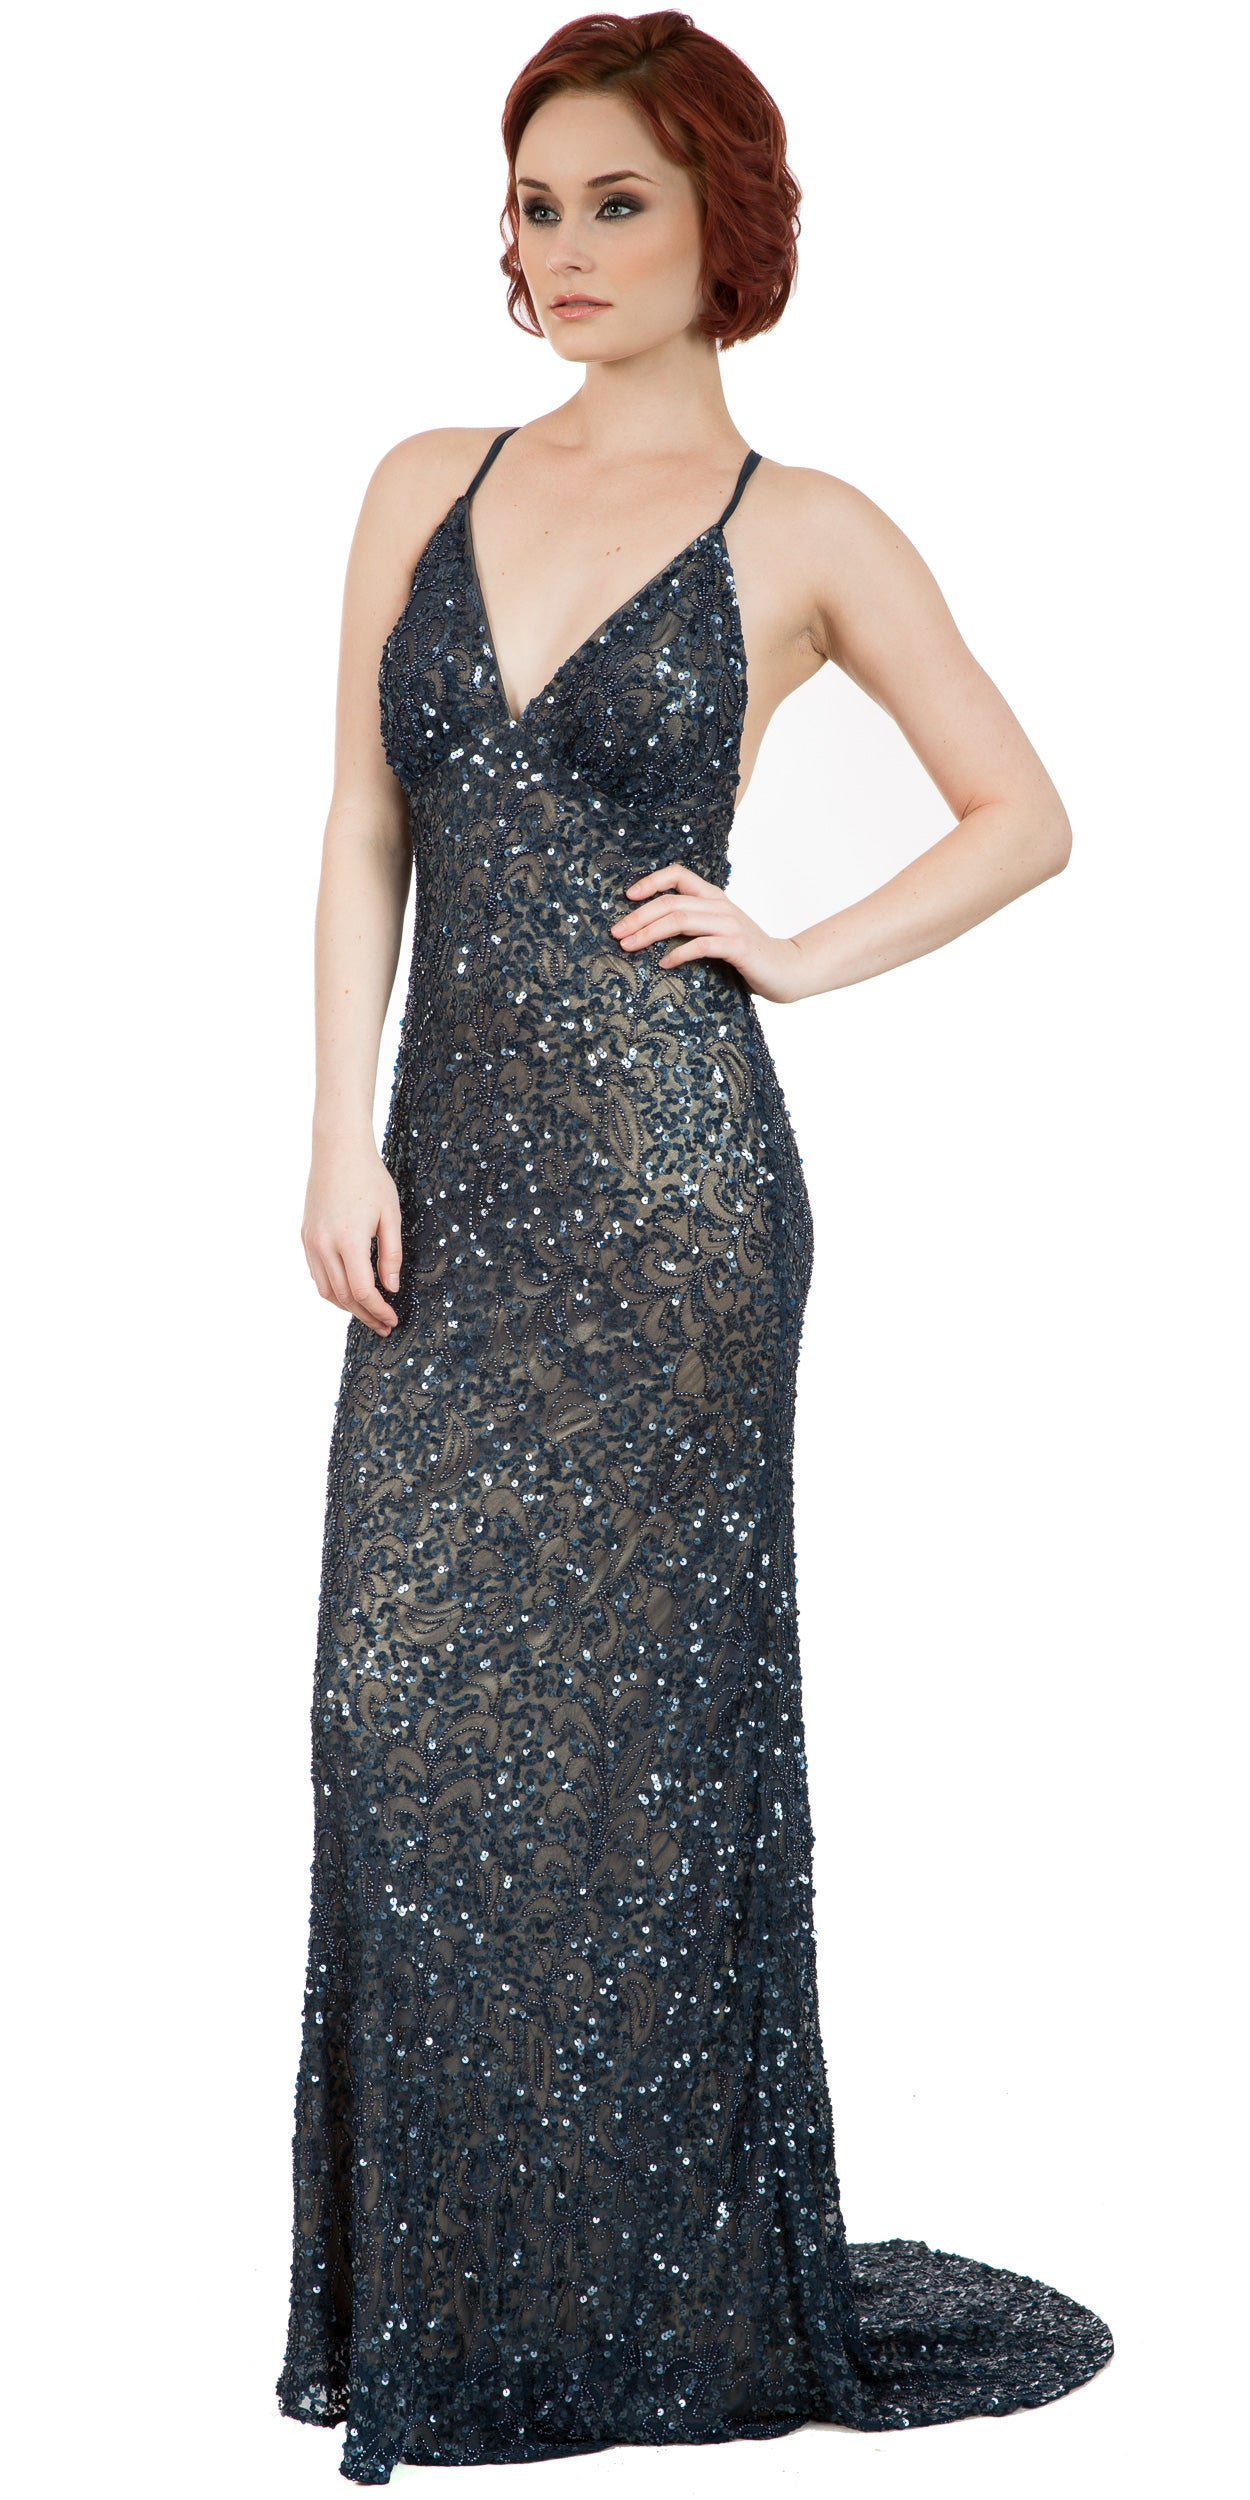 Main image of Spaghetti Straps V-neck Sequins Long Formal Prom Dress